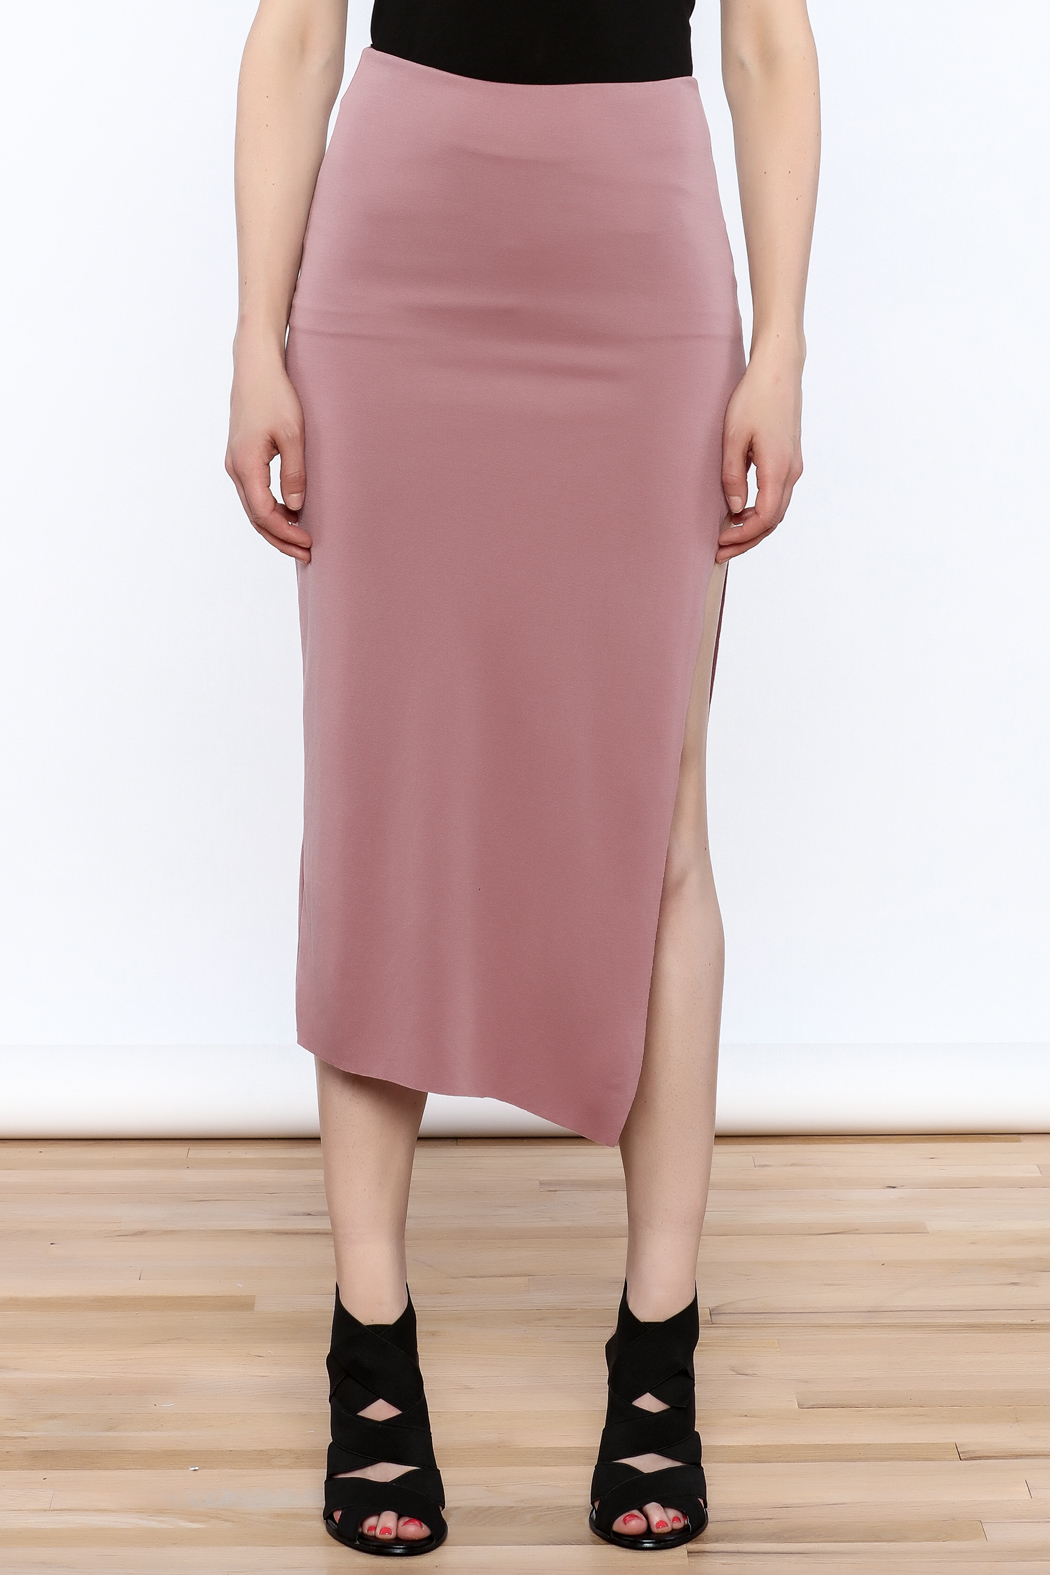 simple the label Modern Bodycon Skirt - Side Cropped Image